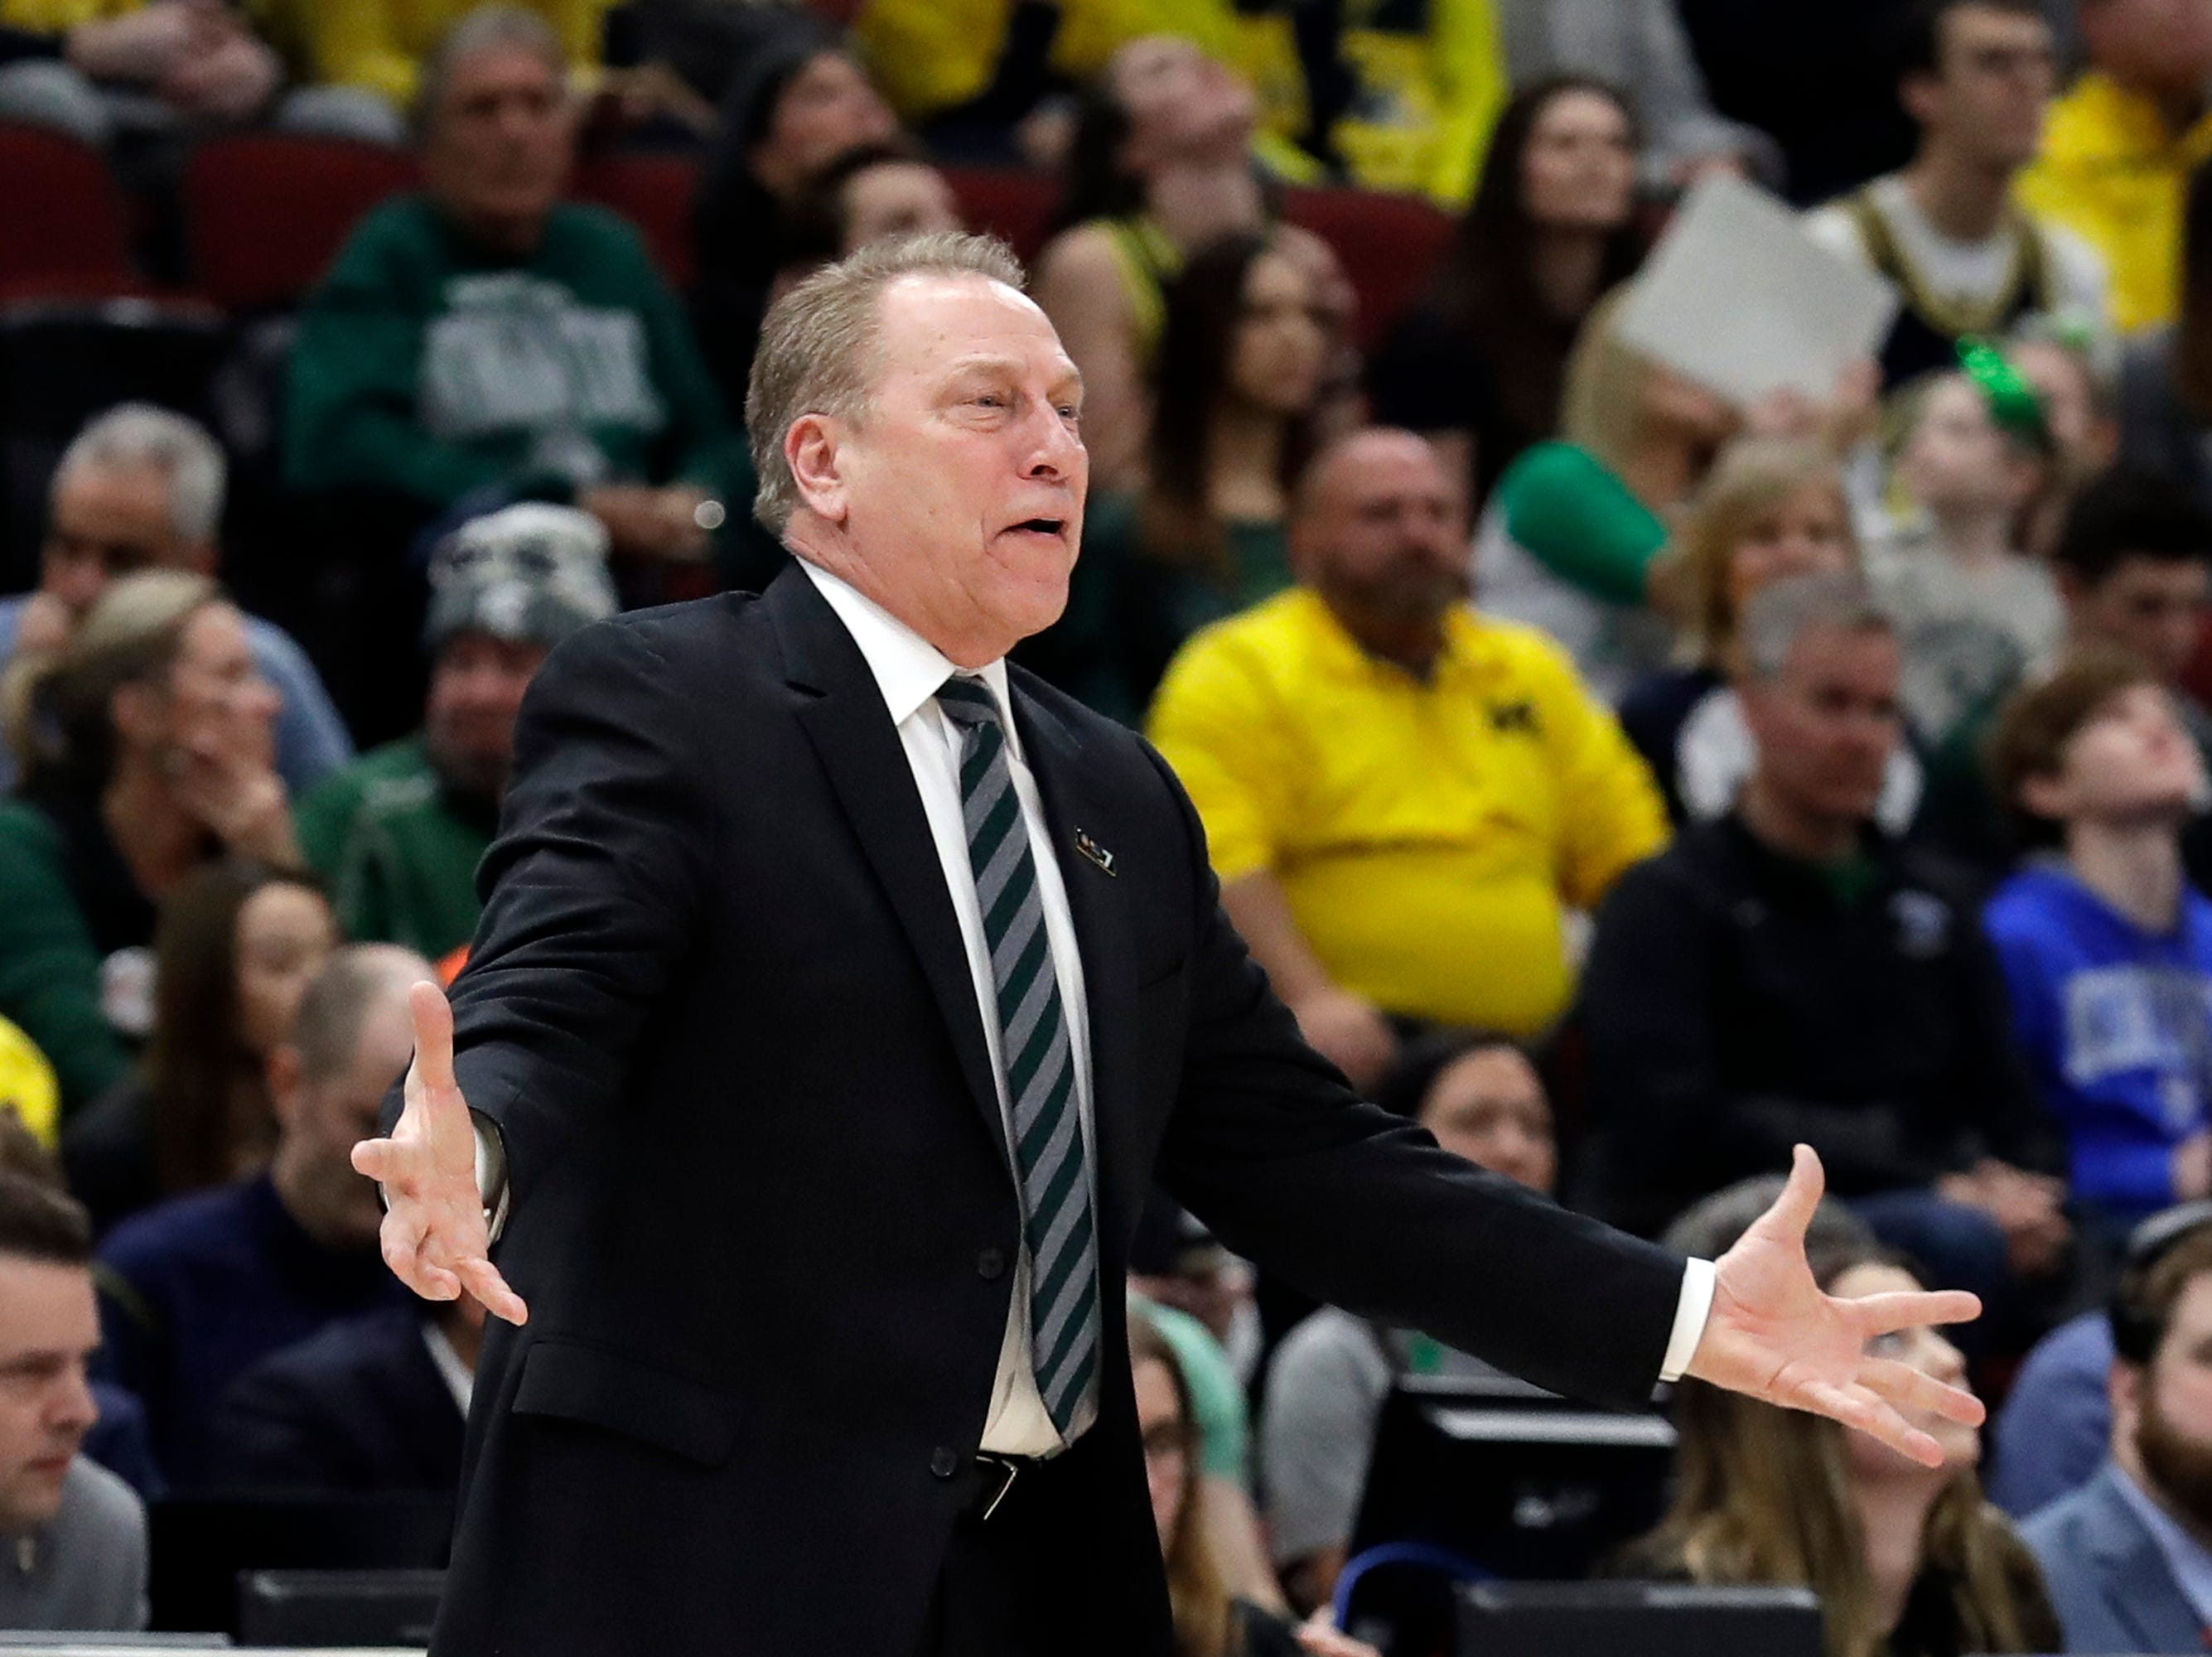 Michigan State head coach Tom Izzo argues a call during the first half of an NCAA college basketball championship game against Michigan in the Big Ten Conference tournament, Sunday, March 17, 2019, in Chicago.